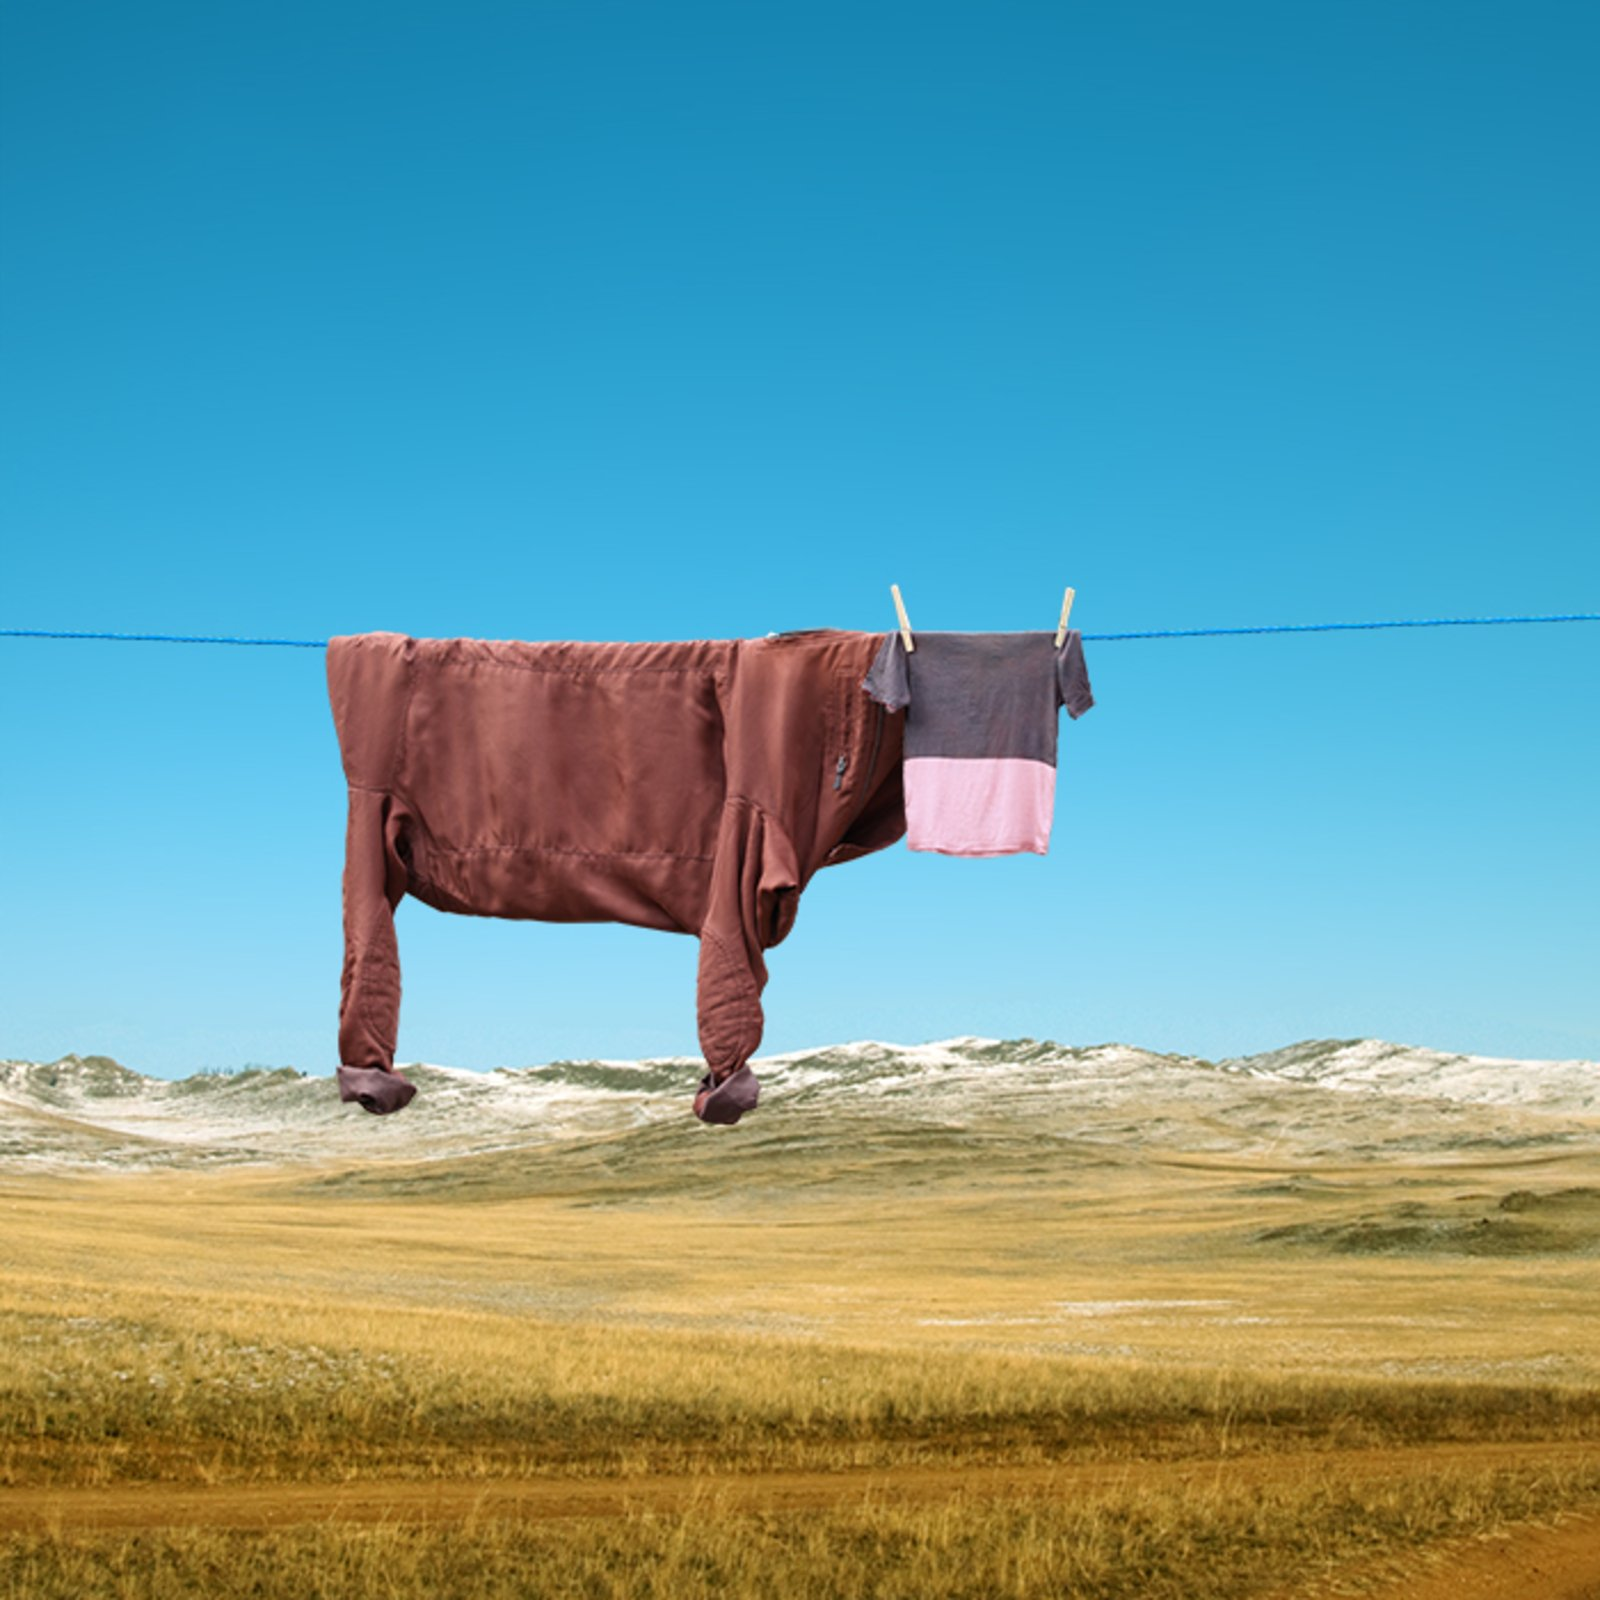 Helga Stentzel household surrealism clothes resembling cow